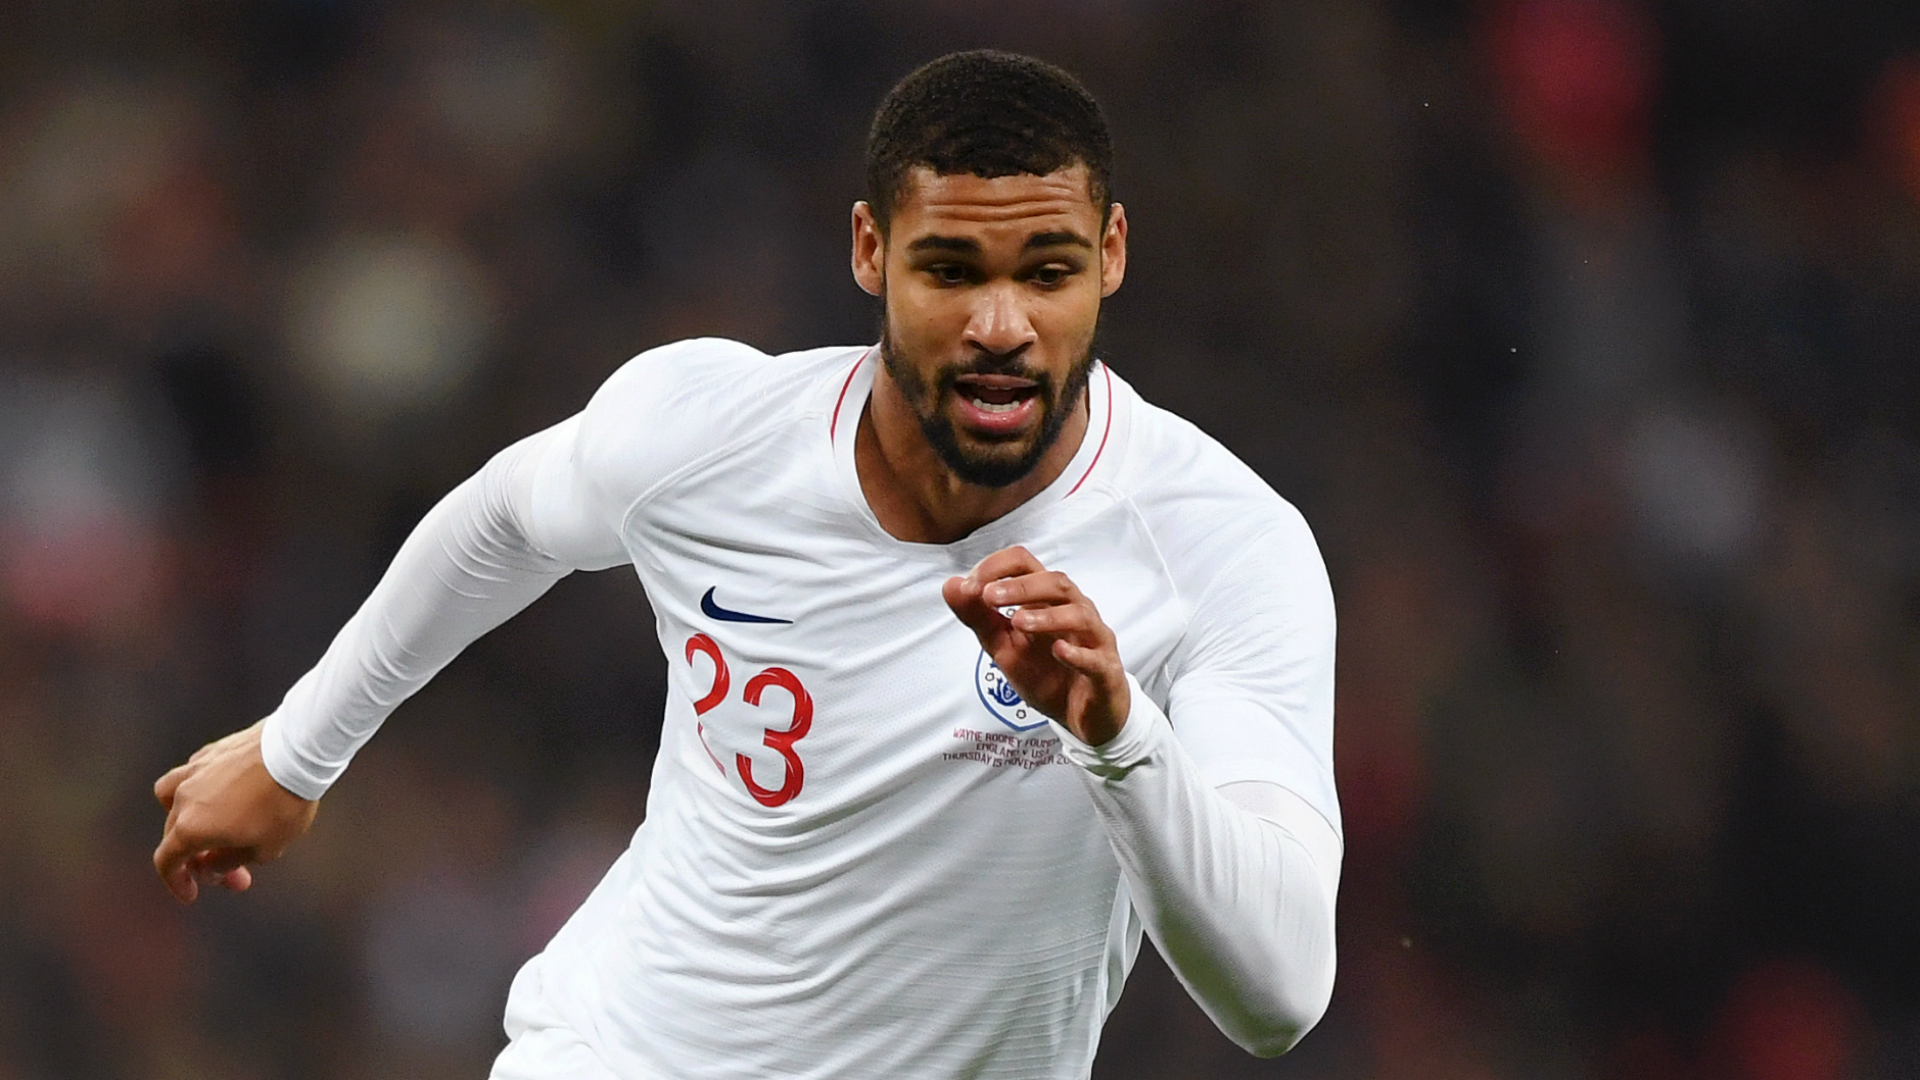 Southgate disappointed for injured Loftus-Cheek